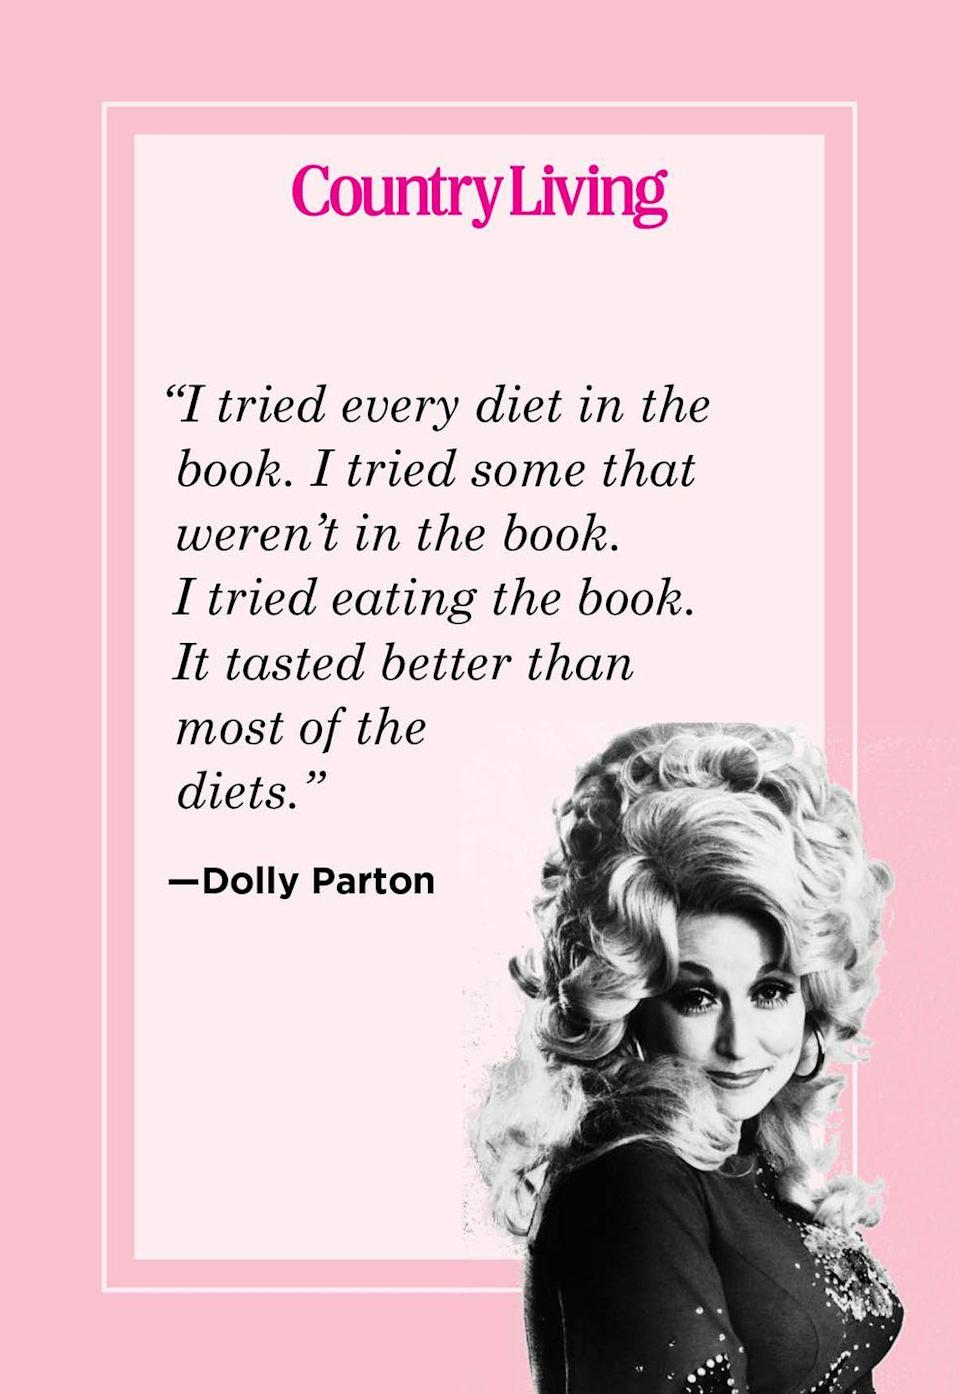 "<p>""I tried every diet in the book. I tried some that weren't in the book. I tried eating the book. It tasted better than most of the diets.""</p>"